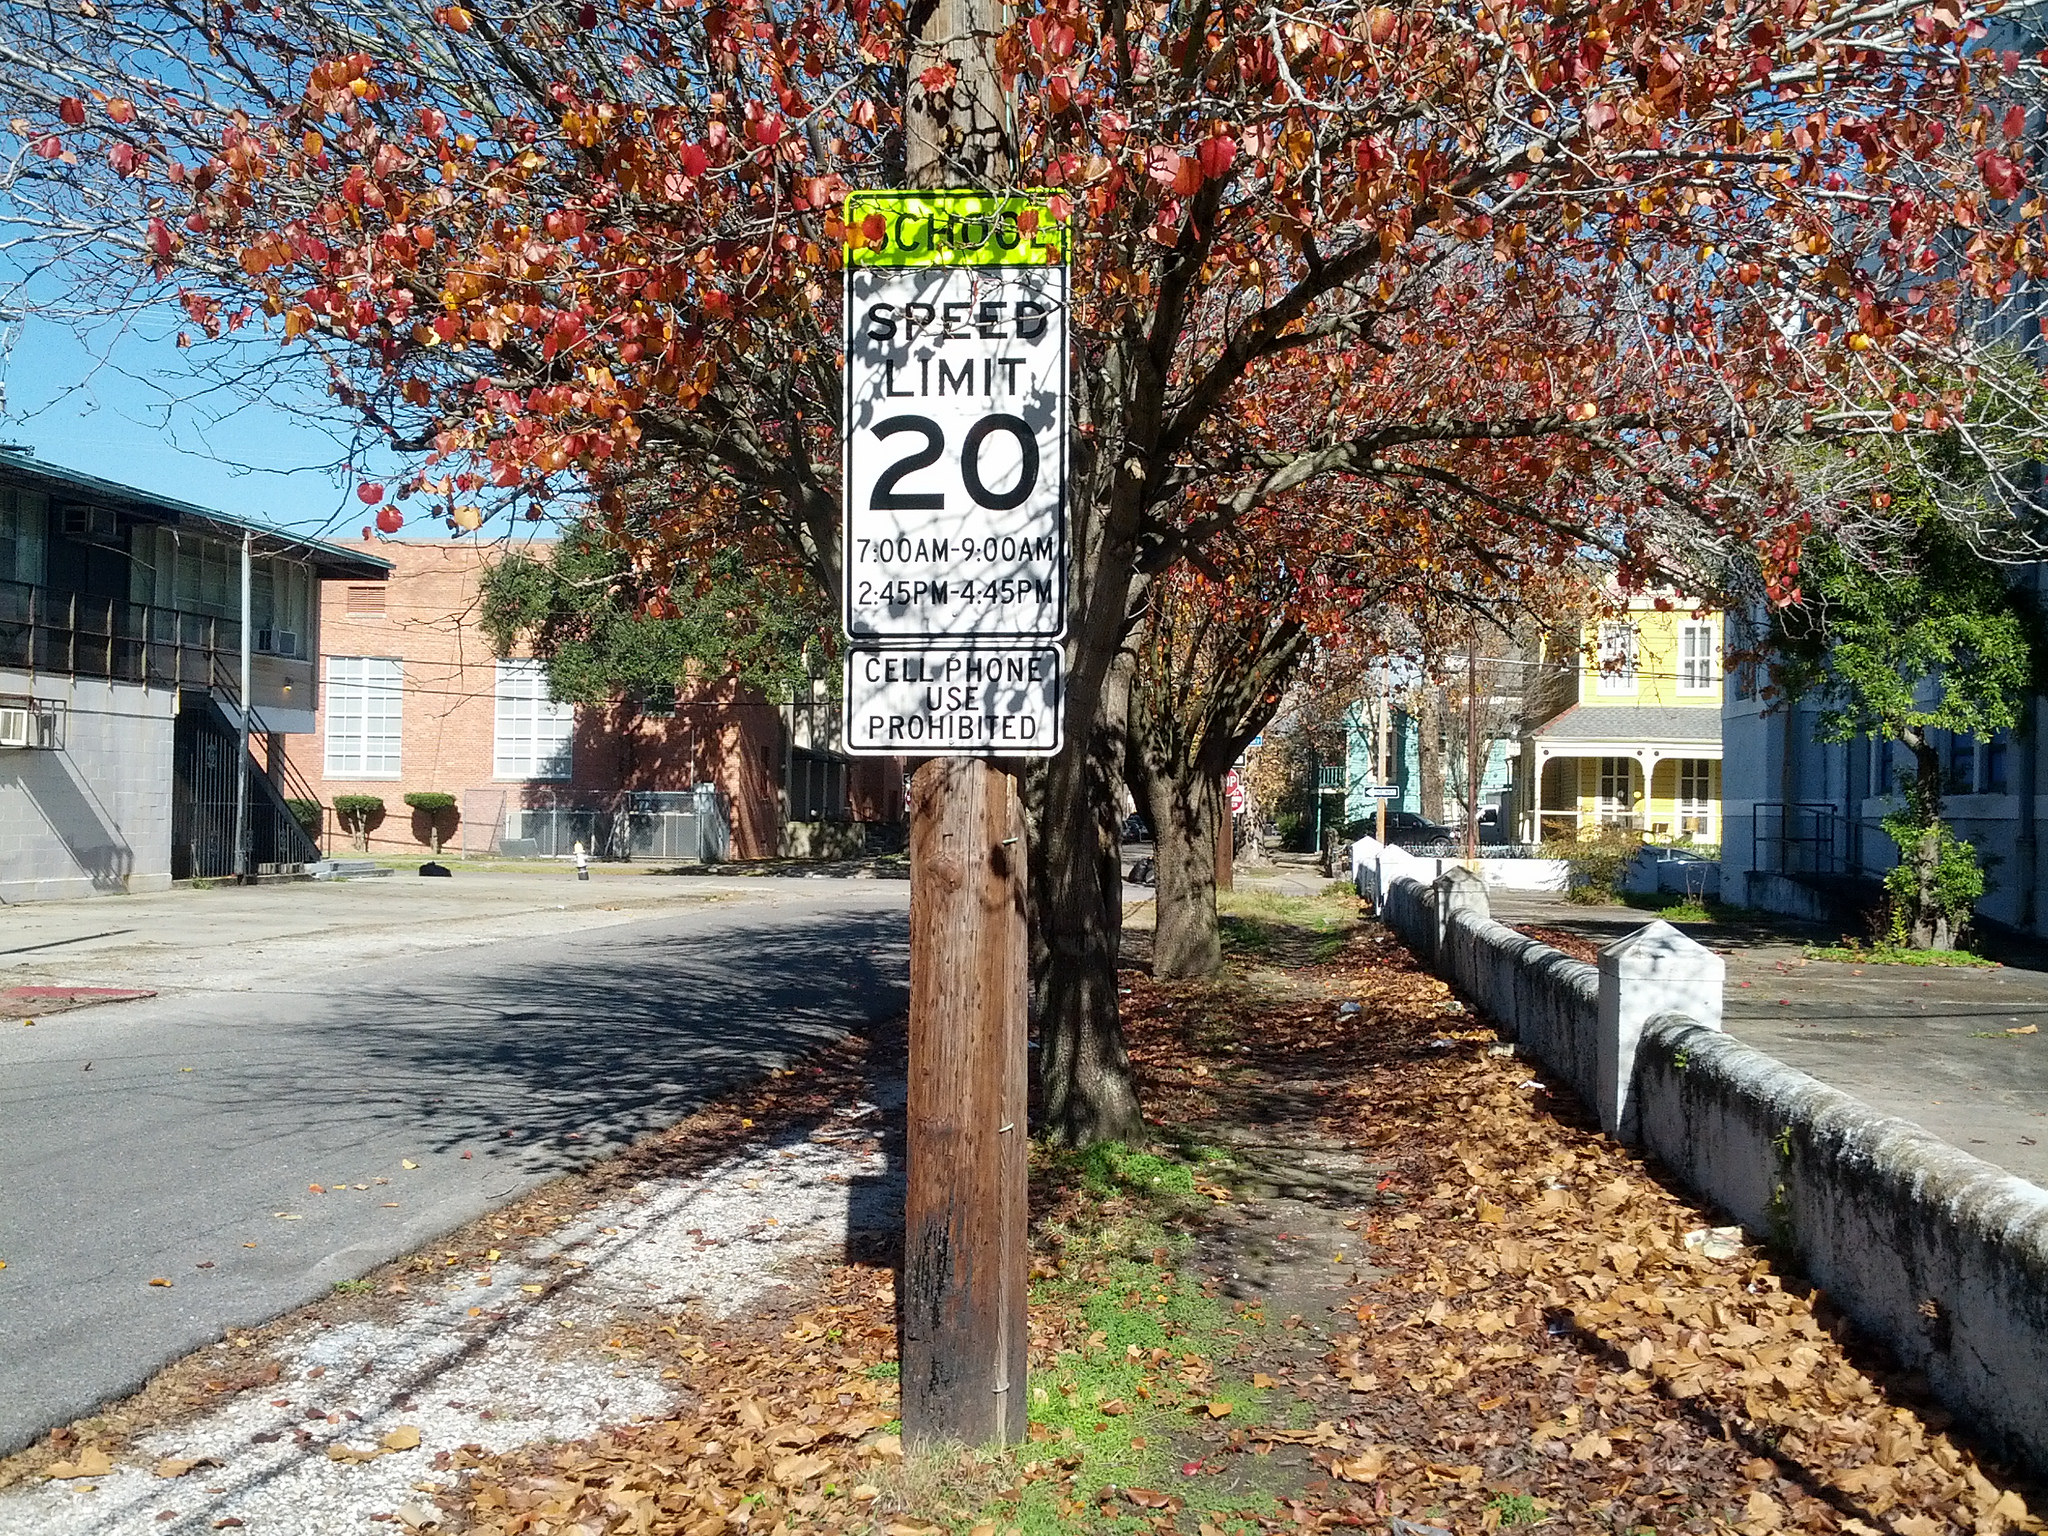 School speed limit sign in New Orleans